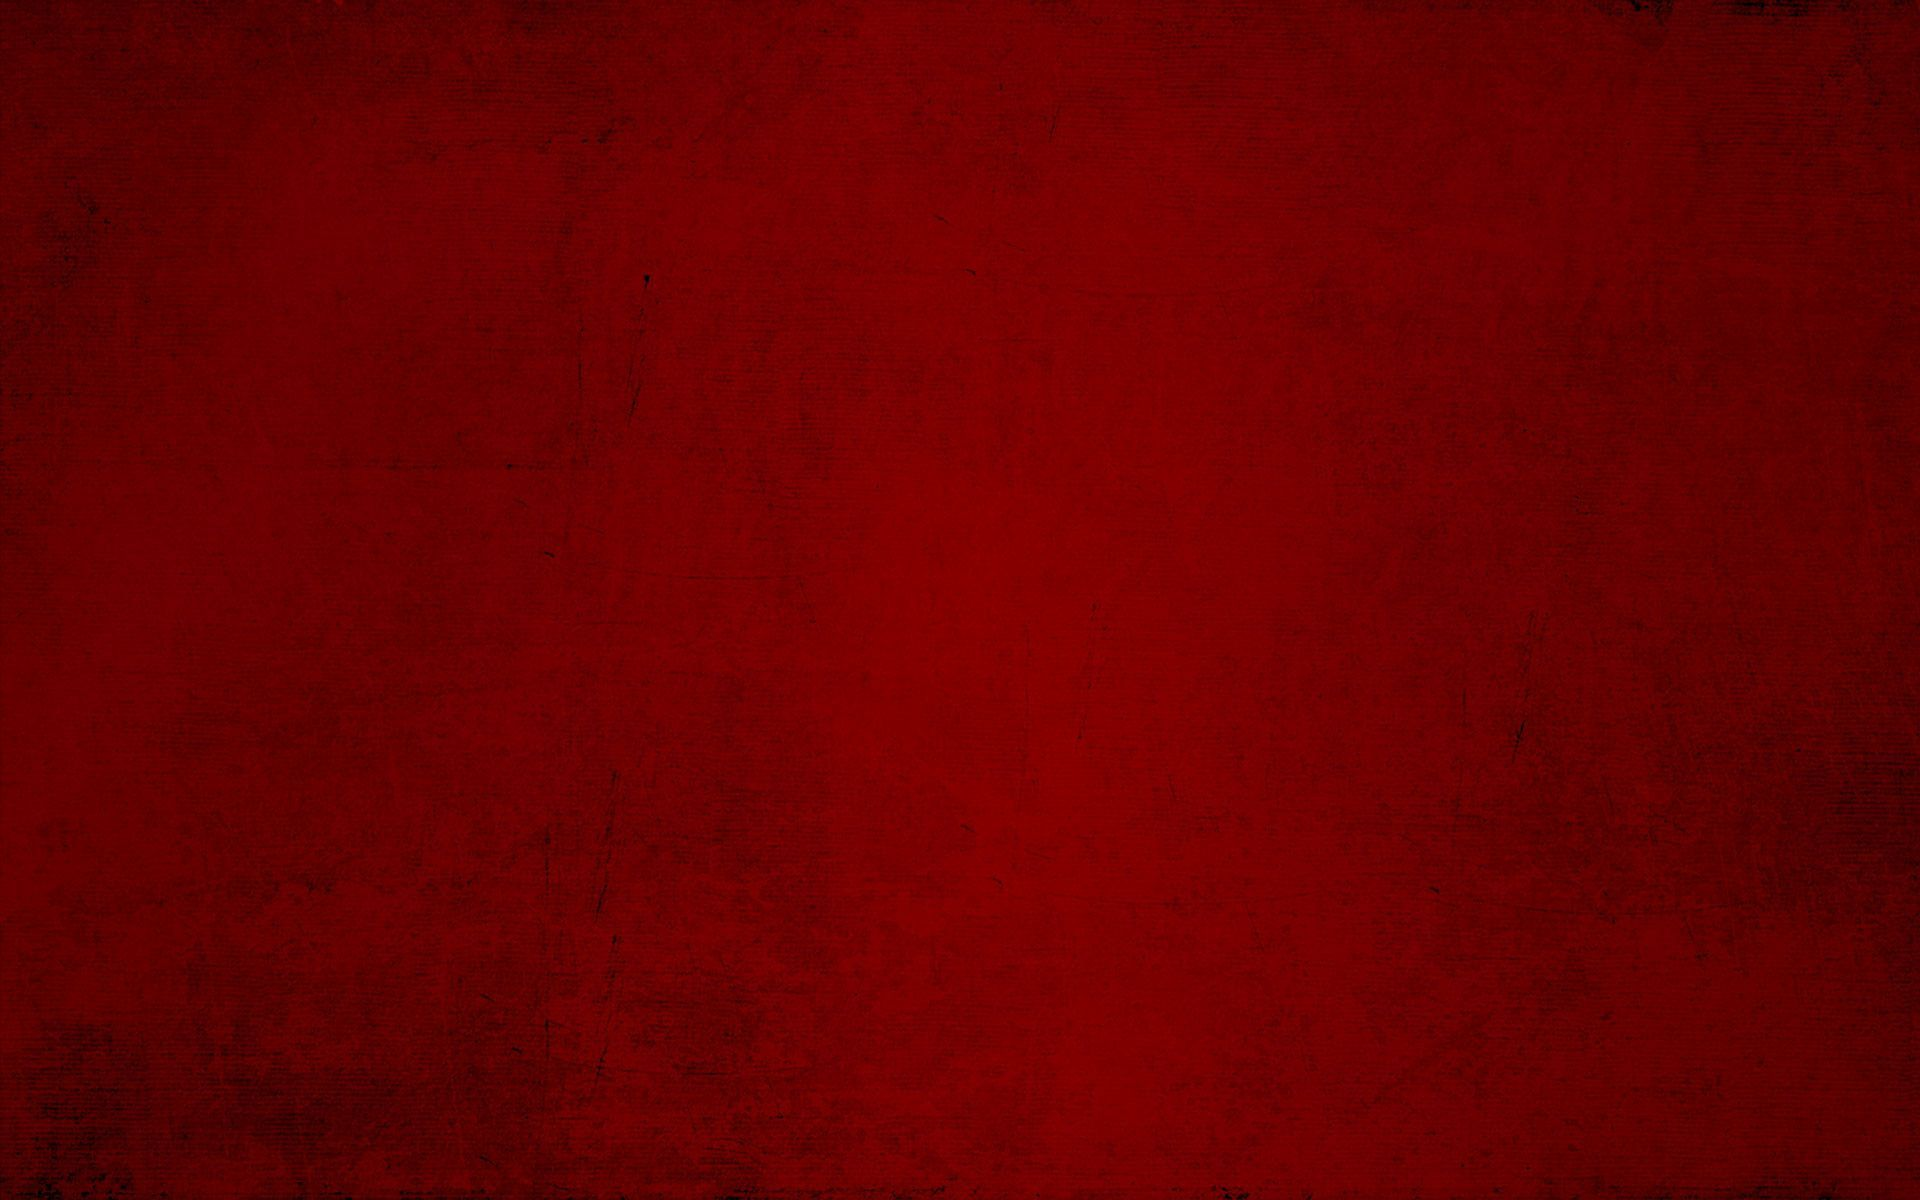 red textured wallpaper 2015 - Grasscloth Wallpaper